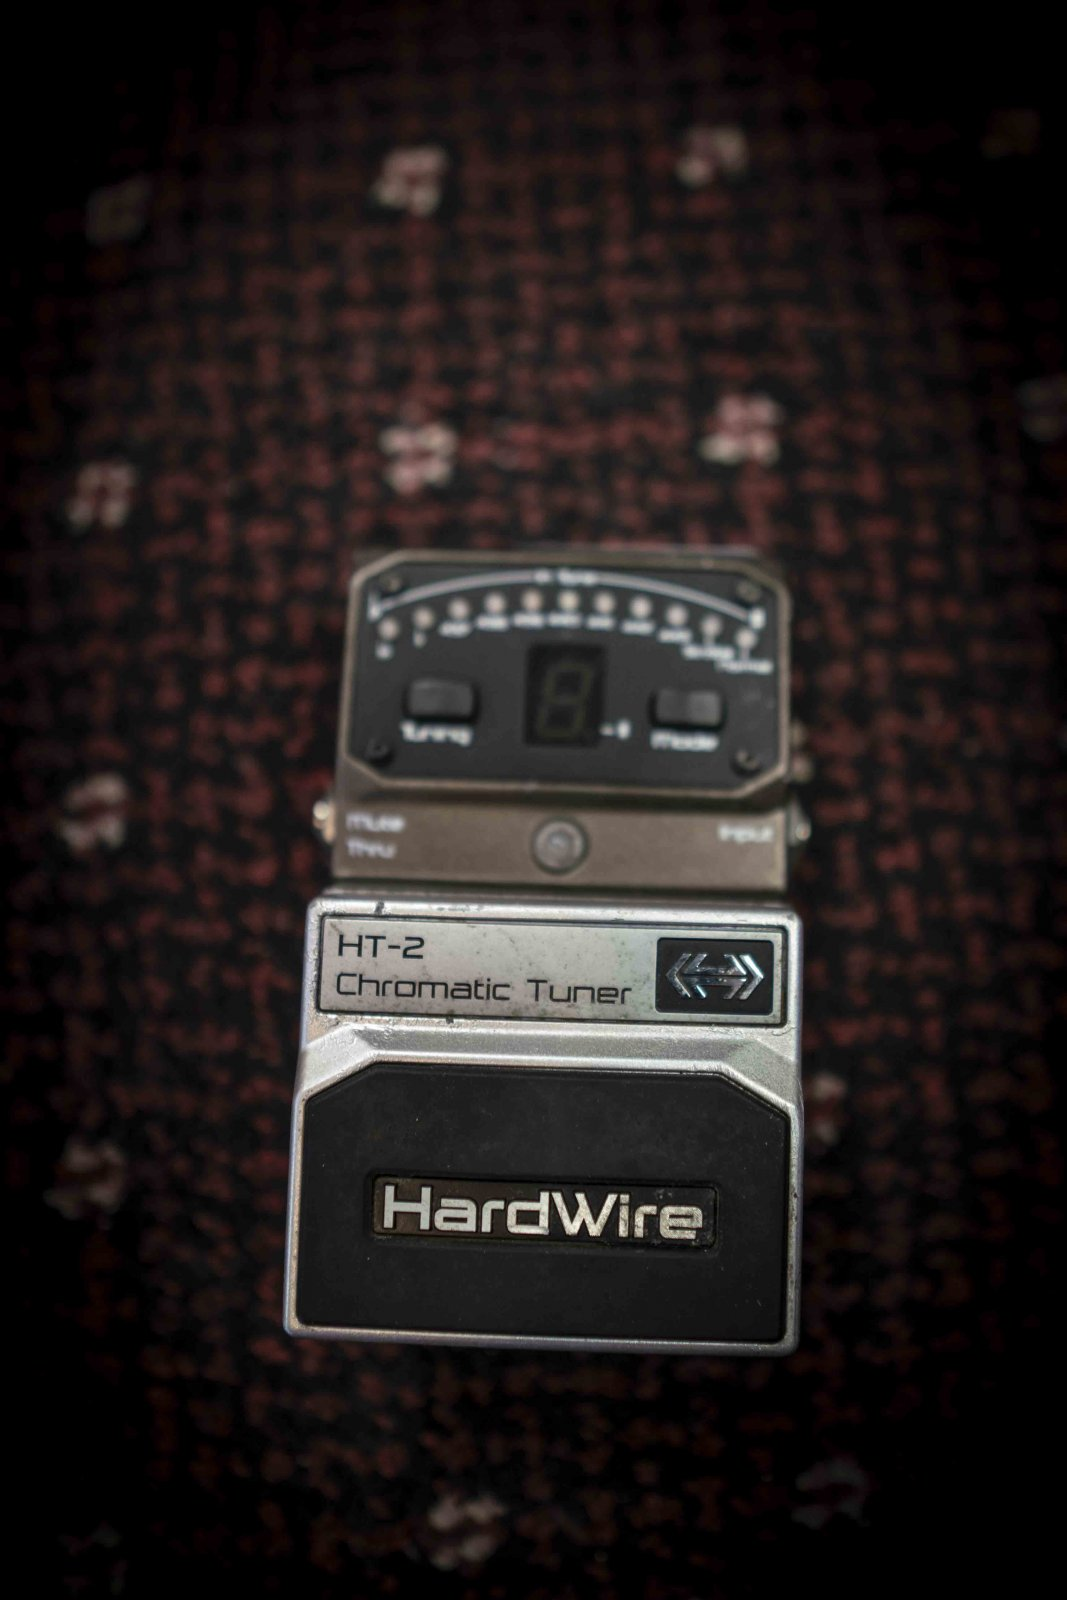 Hardwire HT-2 Chromatic Tuner (Used)